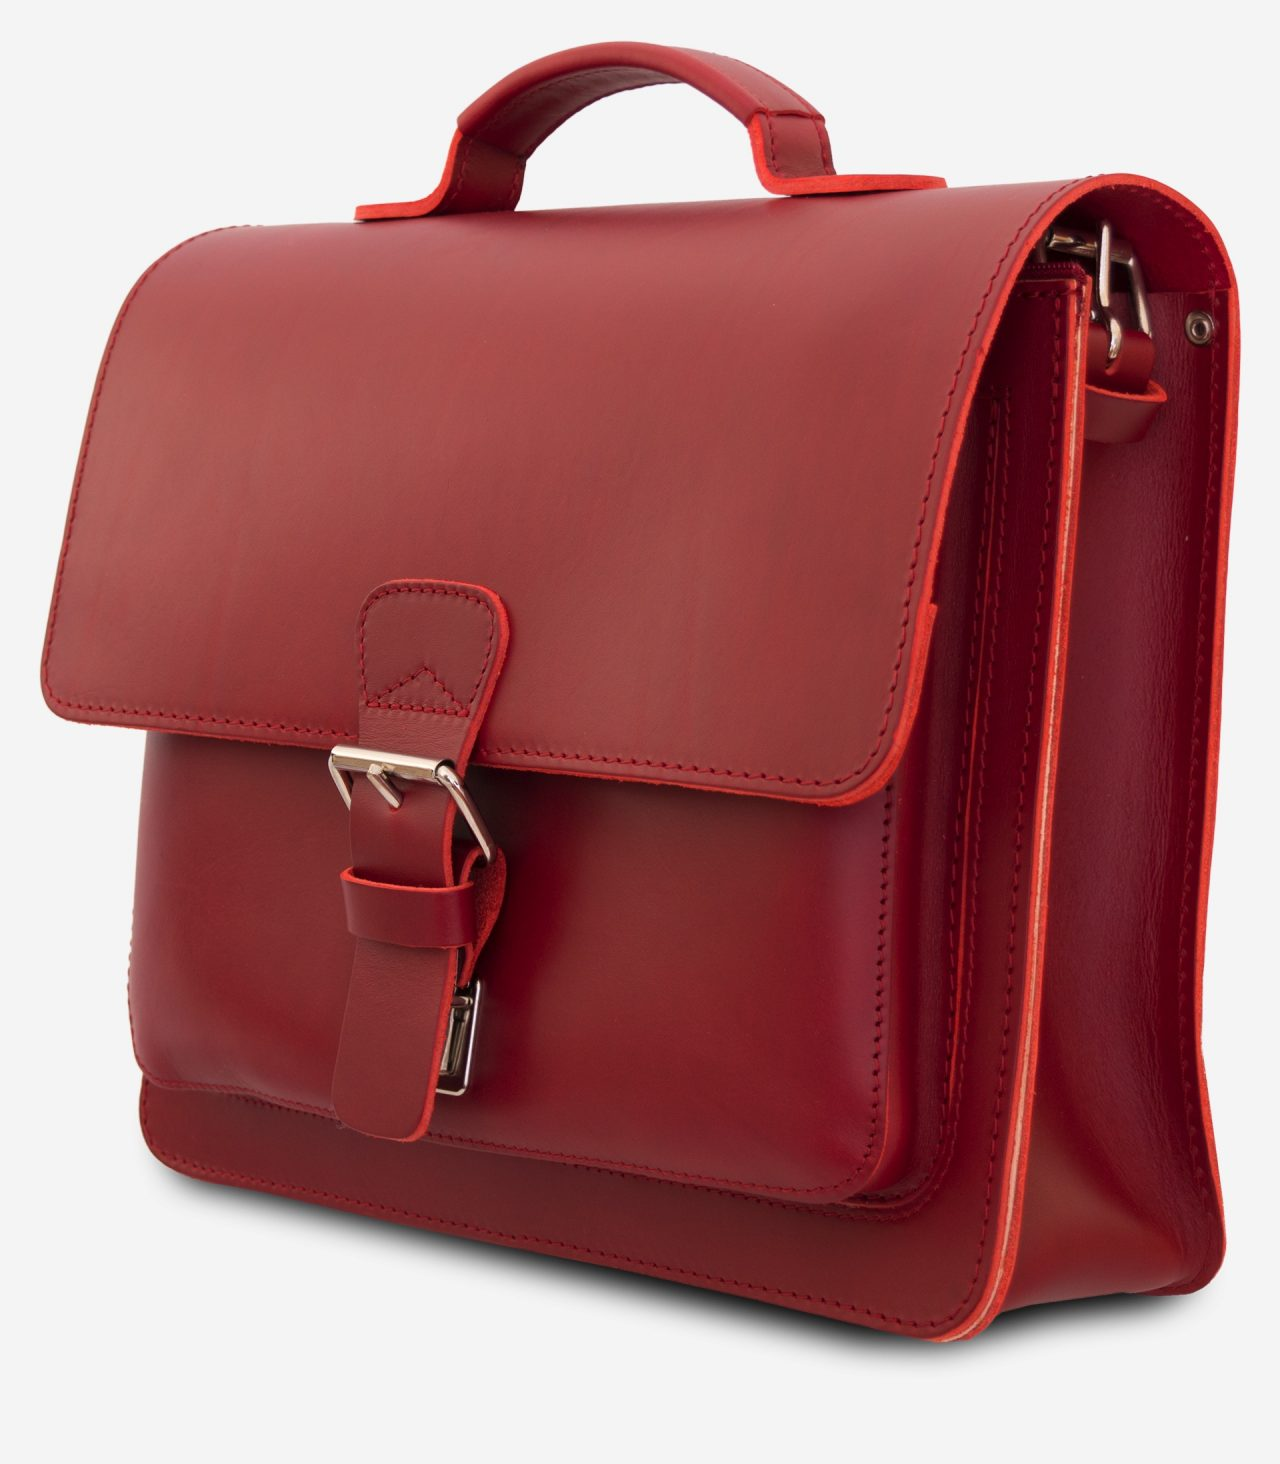 Side view of red leather briefcase with single compartment and large front pocket for women - 152141.